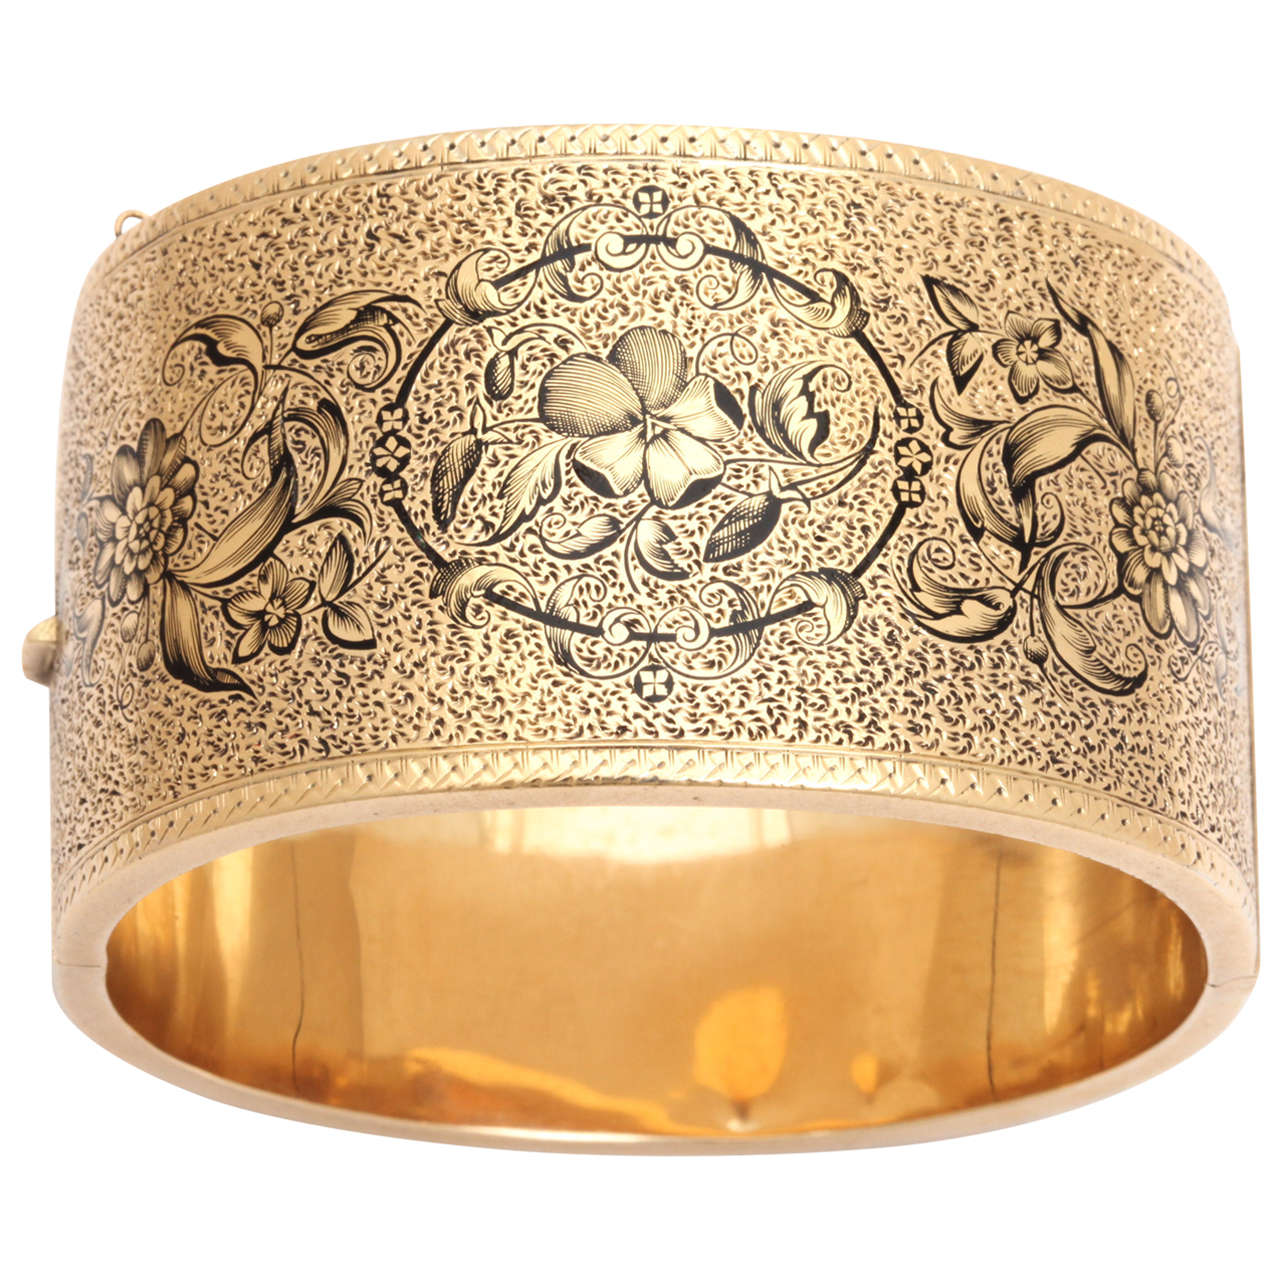 A Dramatic Statement by an Antique Gold Wide Cuff Bracelet ...